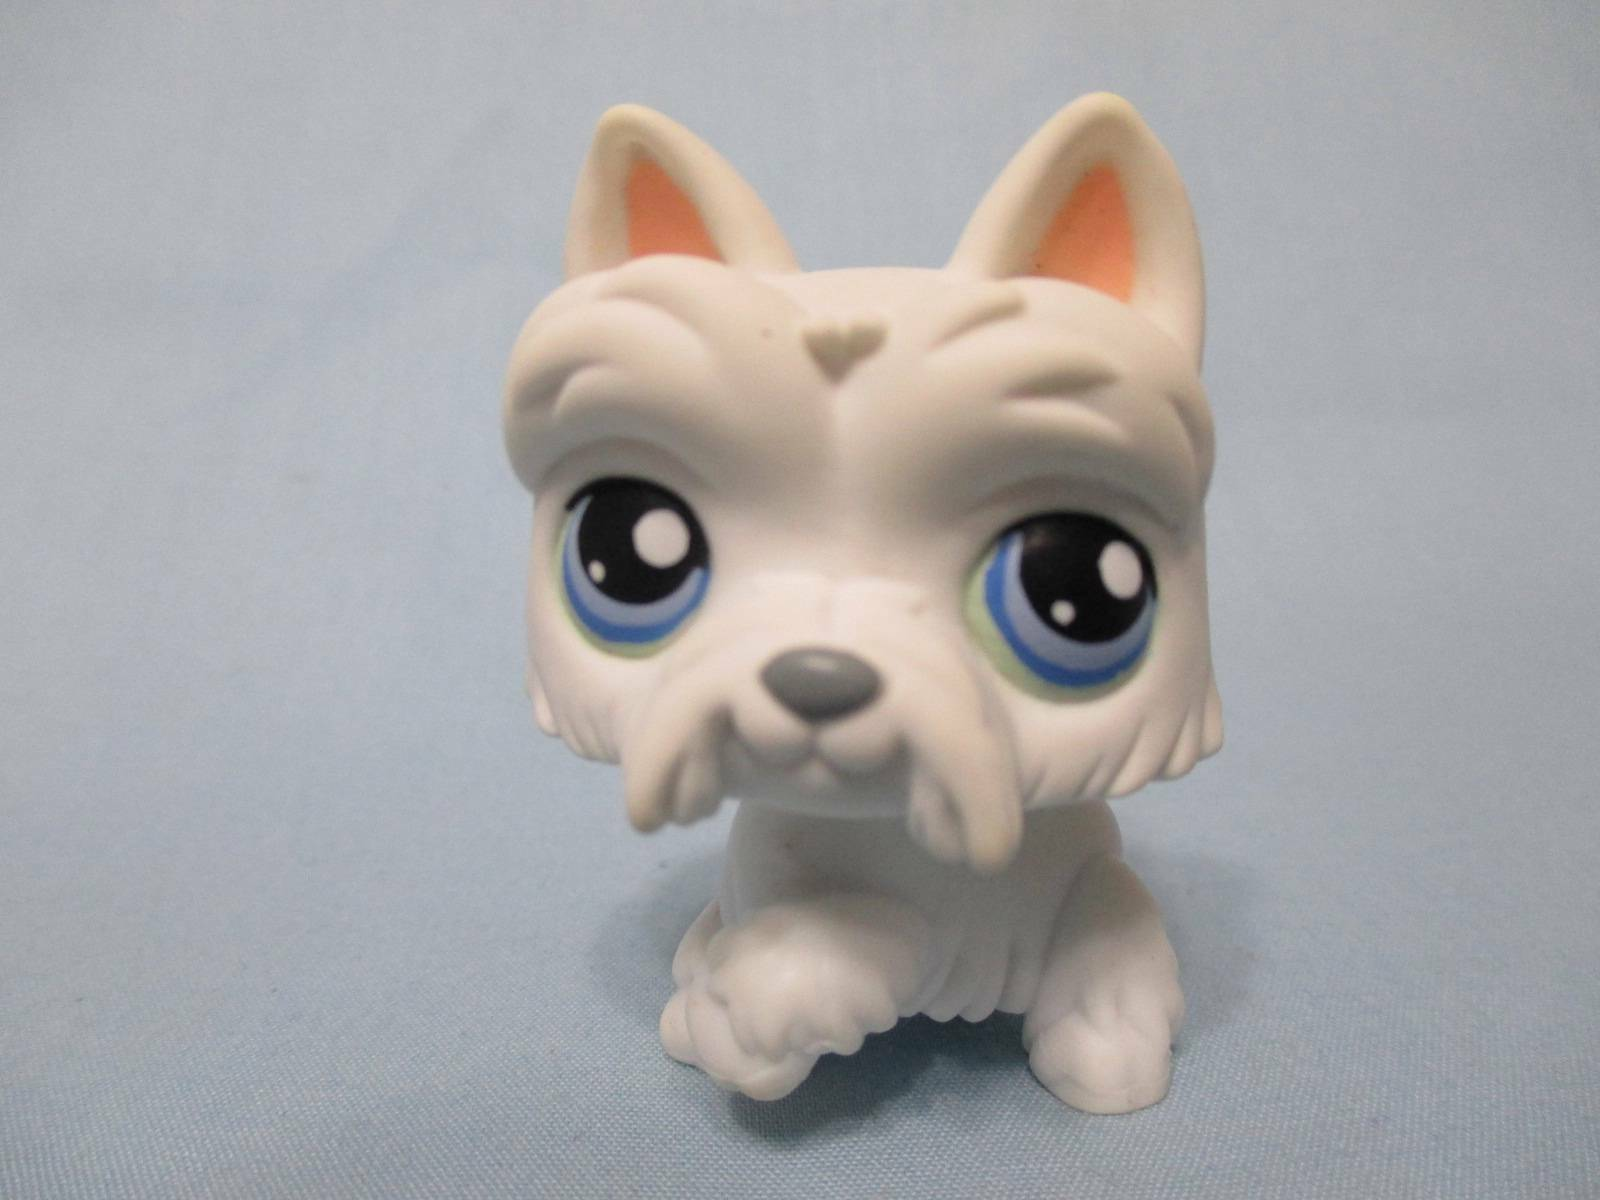 Купить Littlest Pet Shop White Scottie Dog #24 Scottish Terrier LPS 100% Authentic